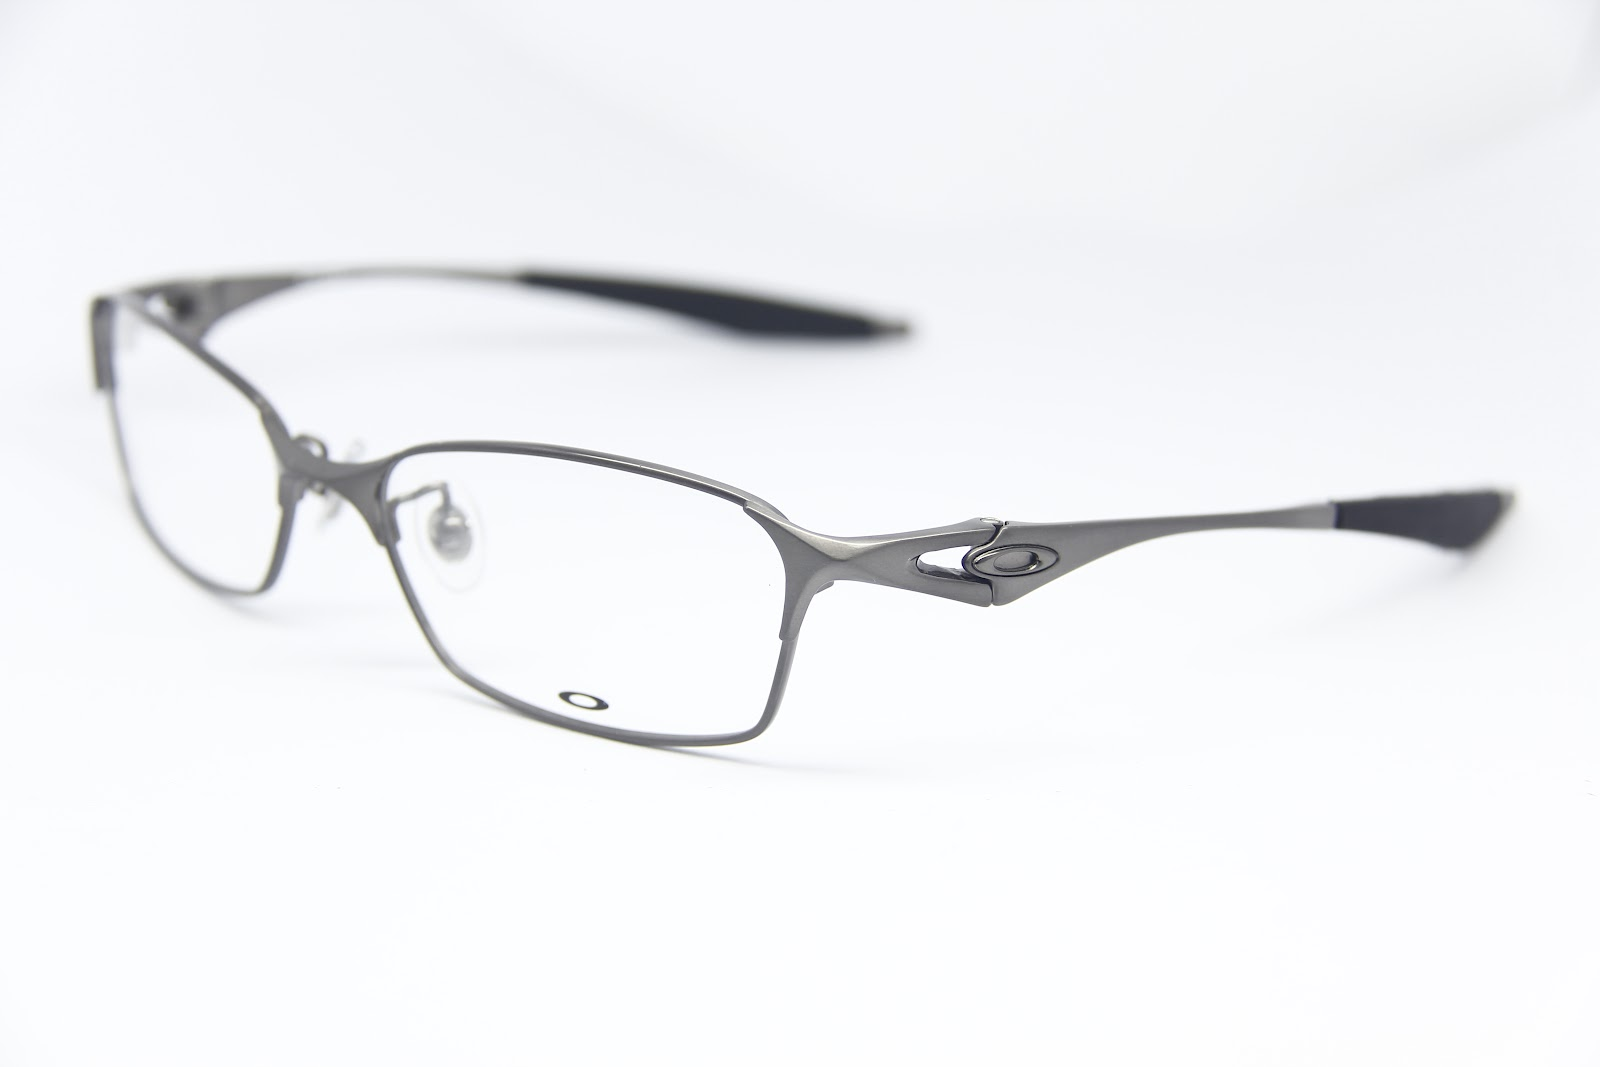 2 for 1 oakley prescription glasses